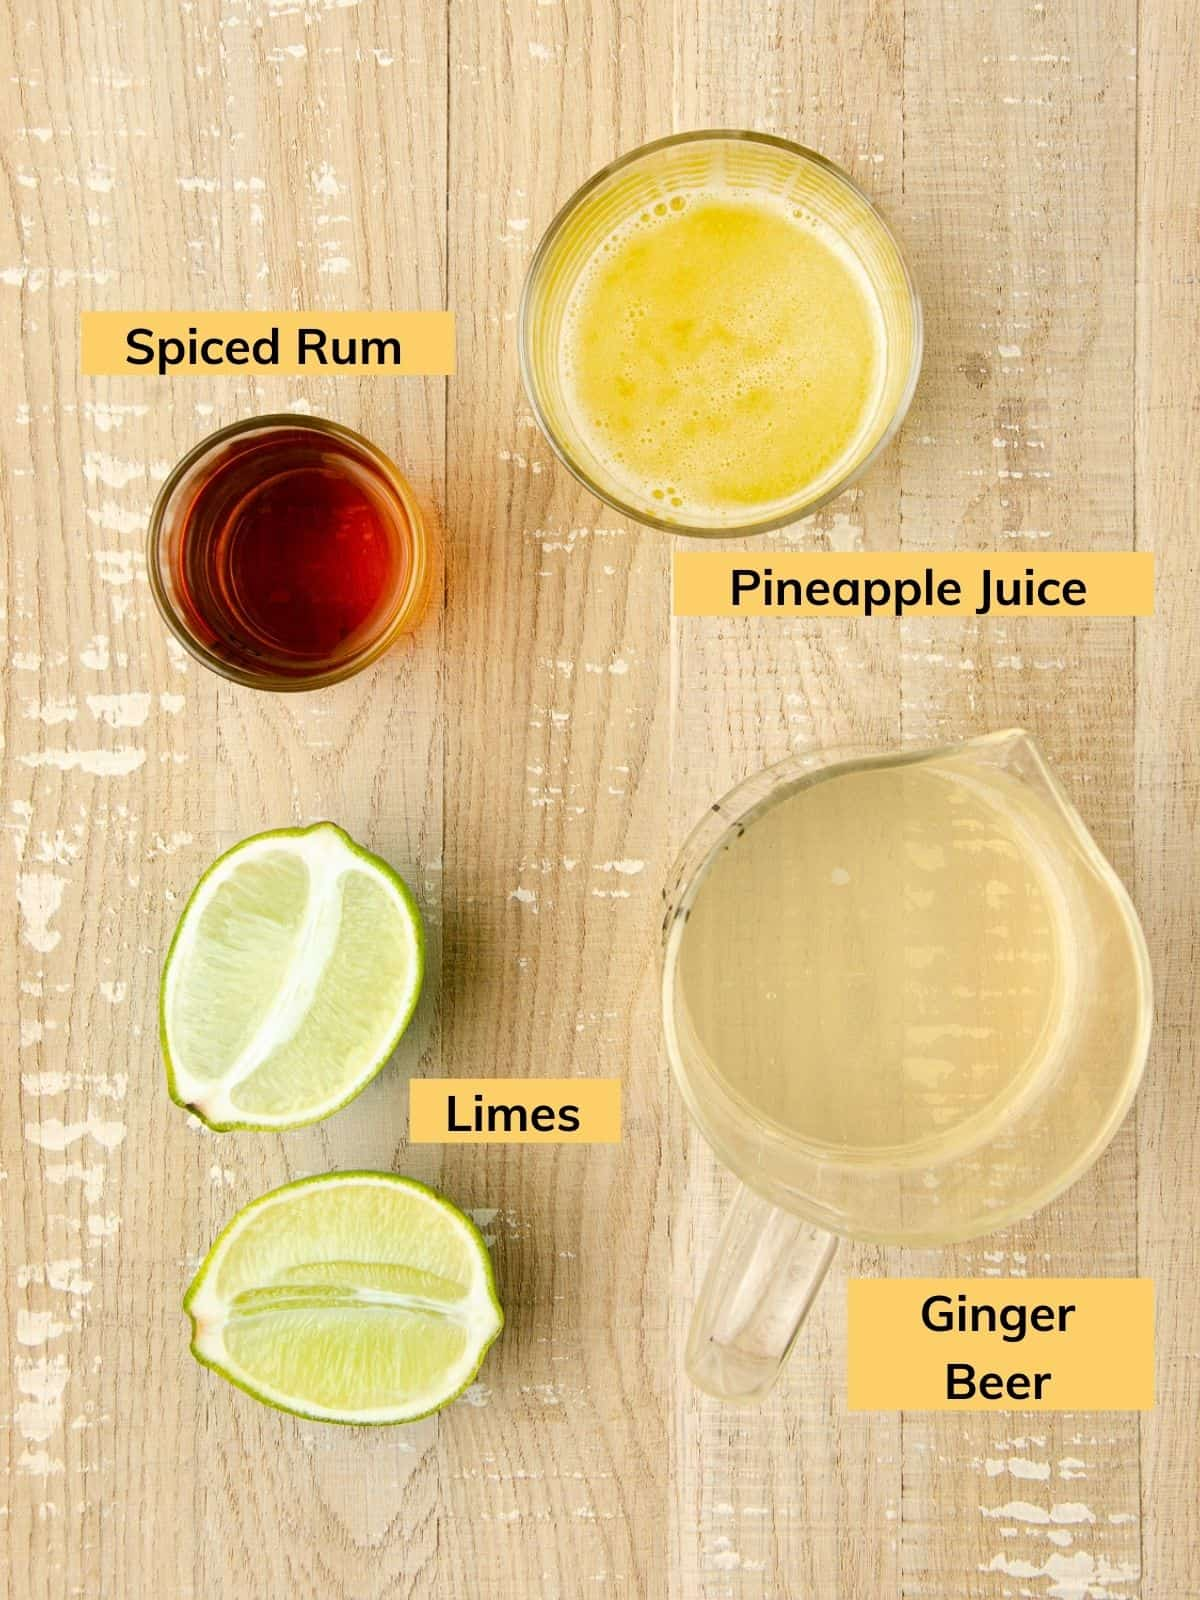 ingredients for a rum moscow mule: a bowl of pineapple juice, a shot glass with spiced rum, a lime cut in half, and a measuring cup filled with ginger beer